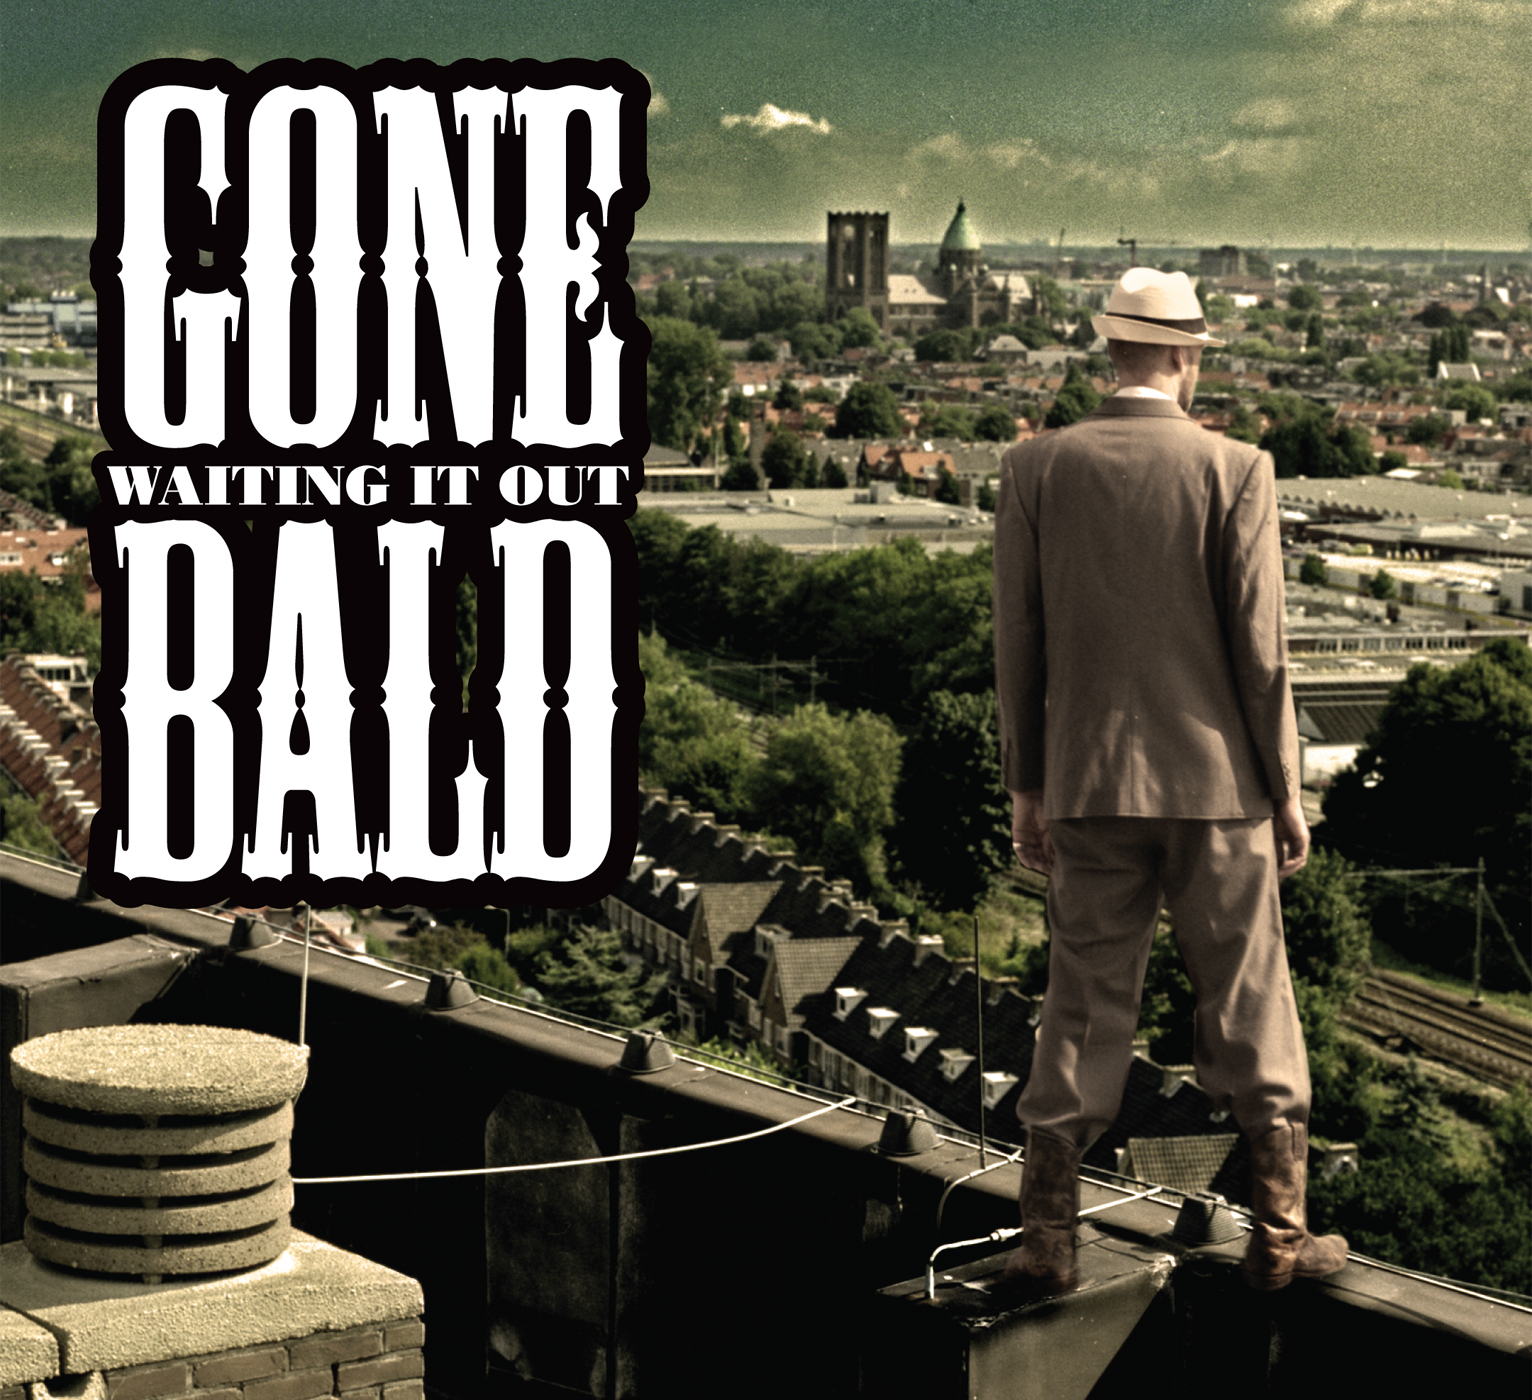 NM055: gone bald - waiting it out